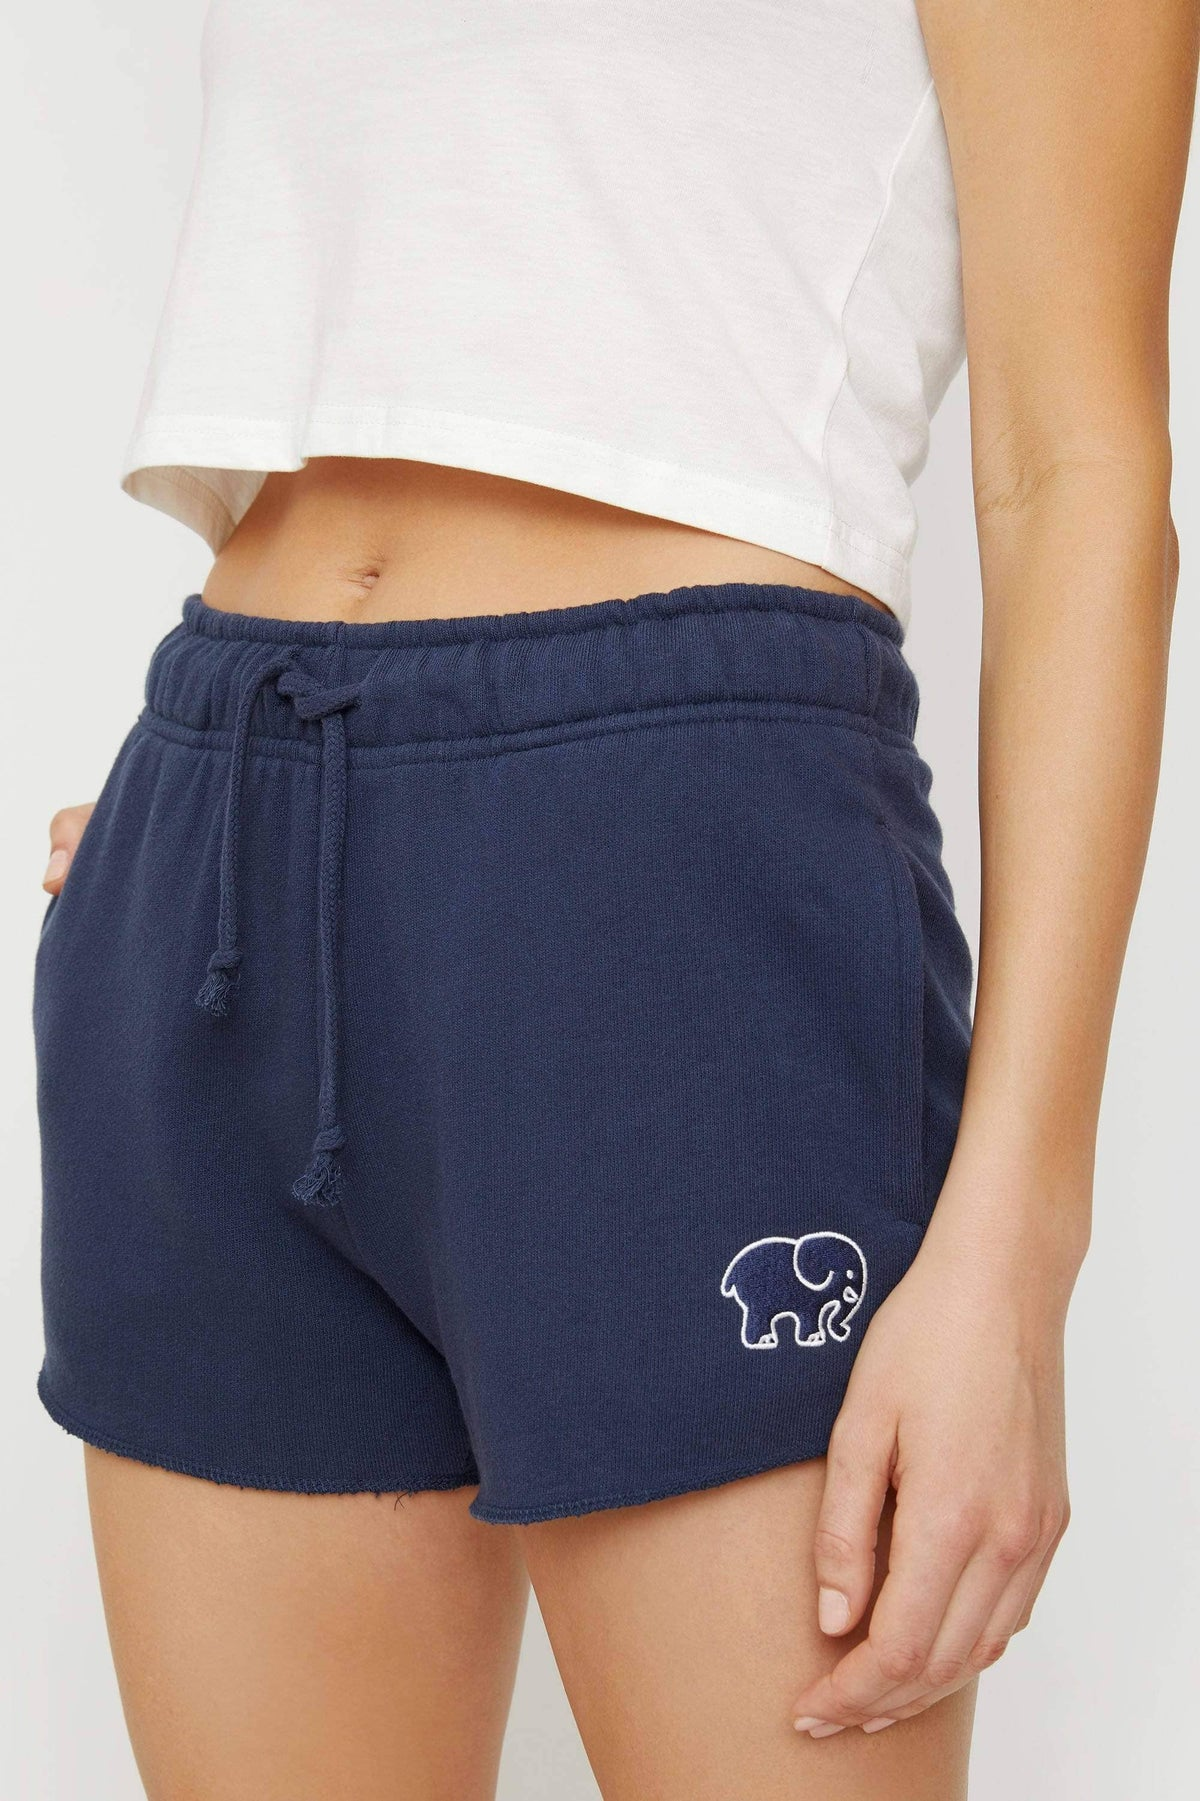 Ivory Ella Women's Bottoms XS Navy Organic French Terry Short